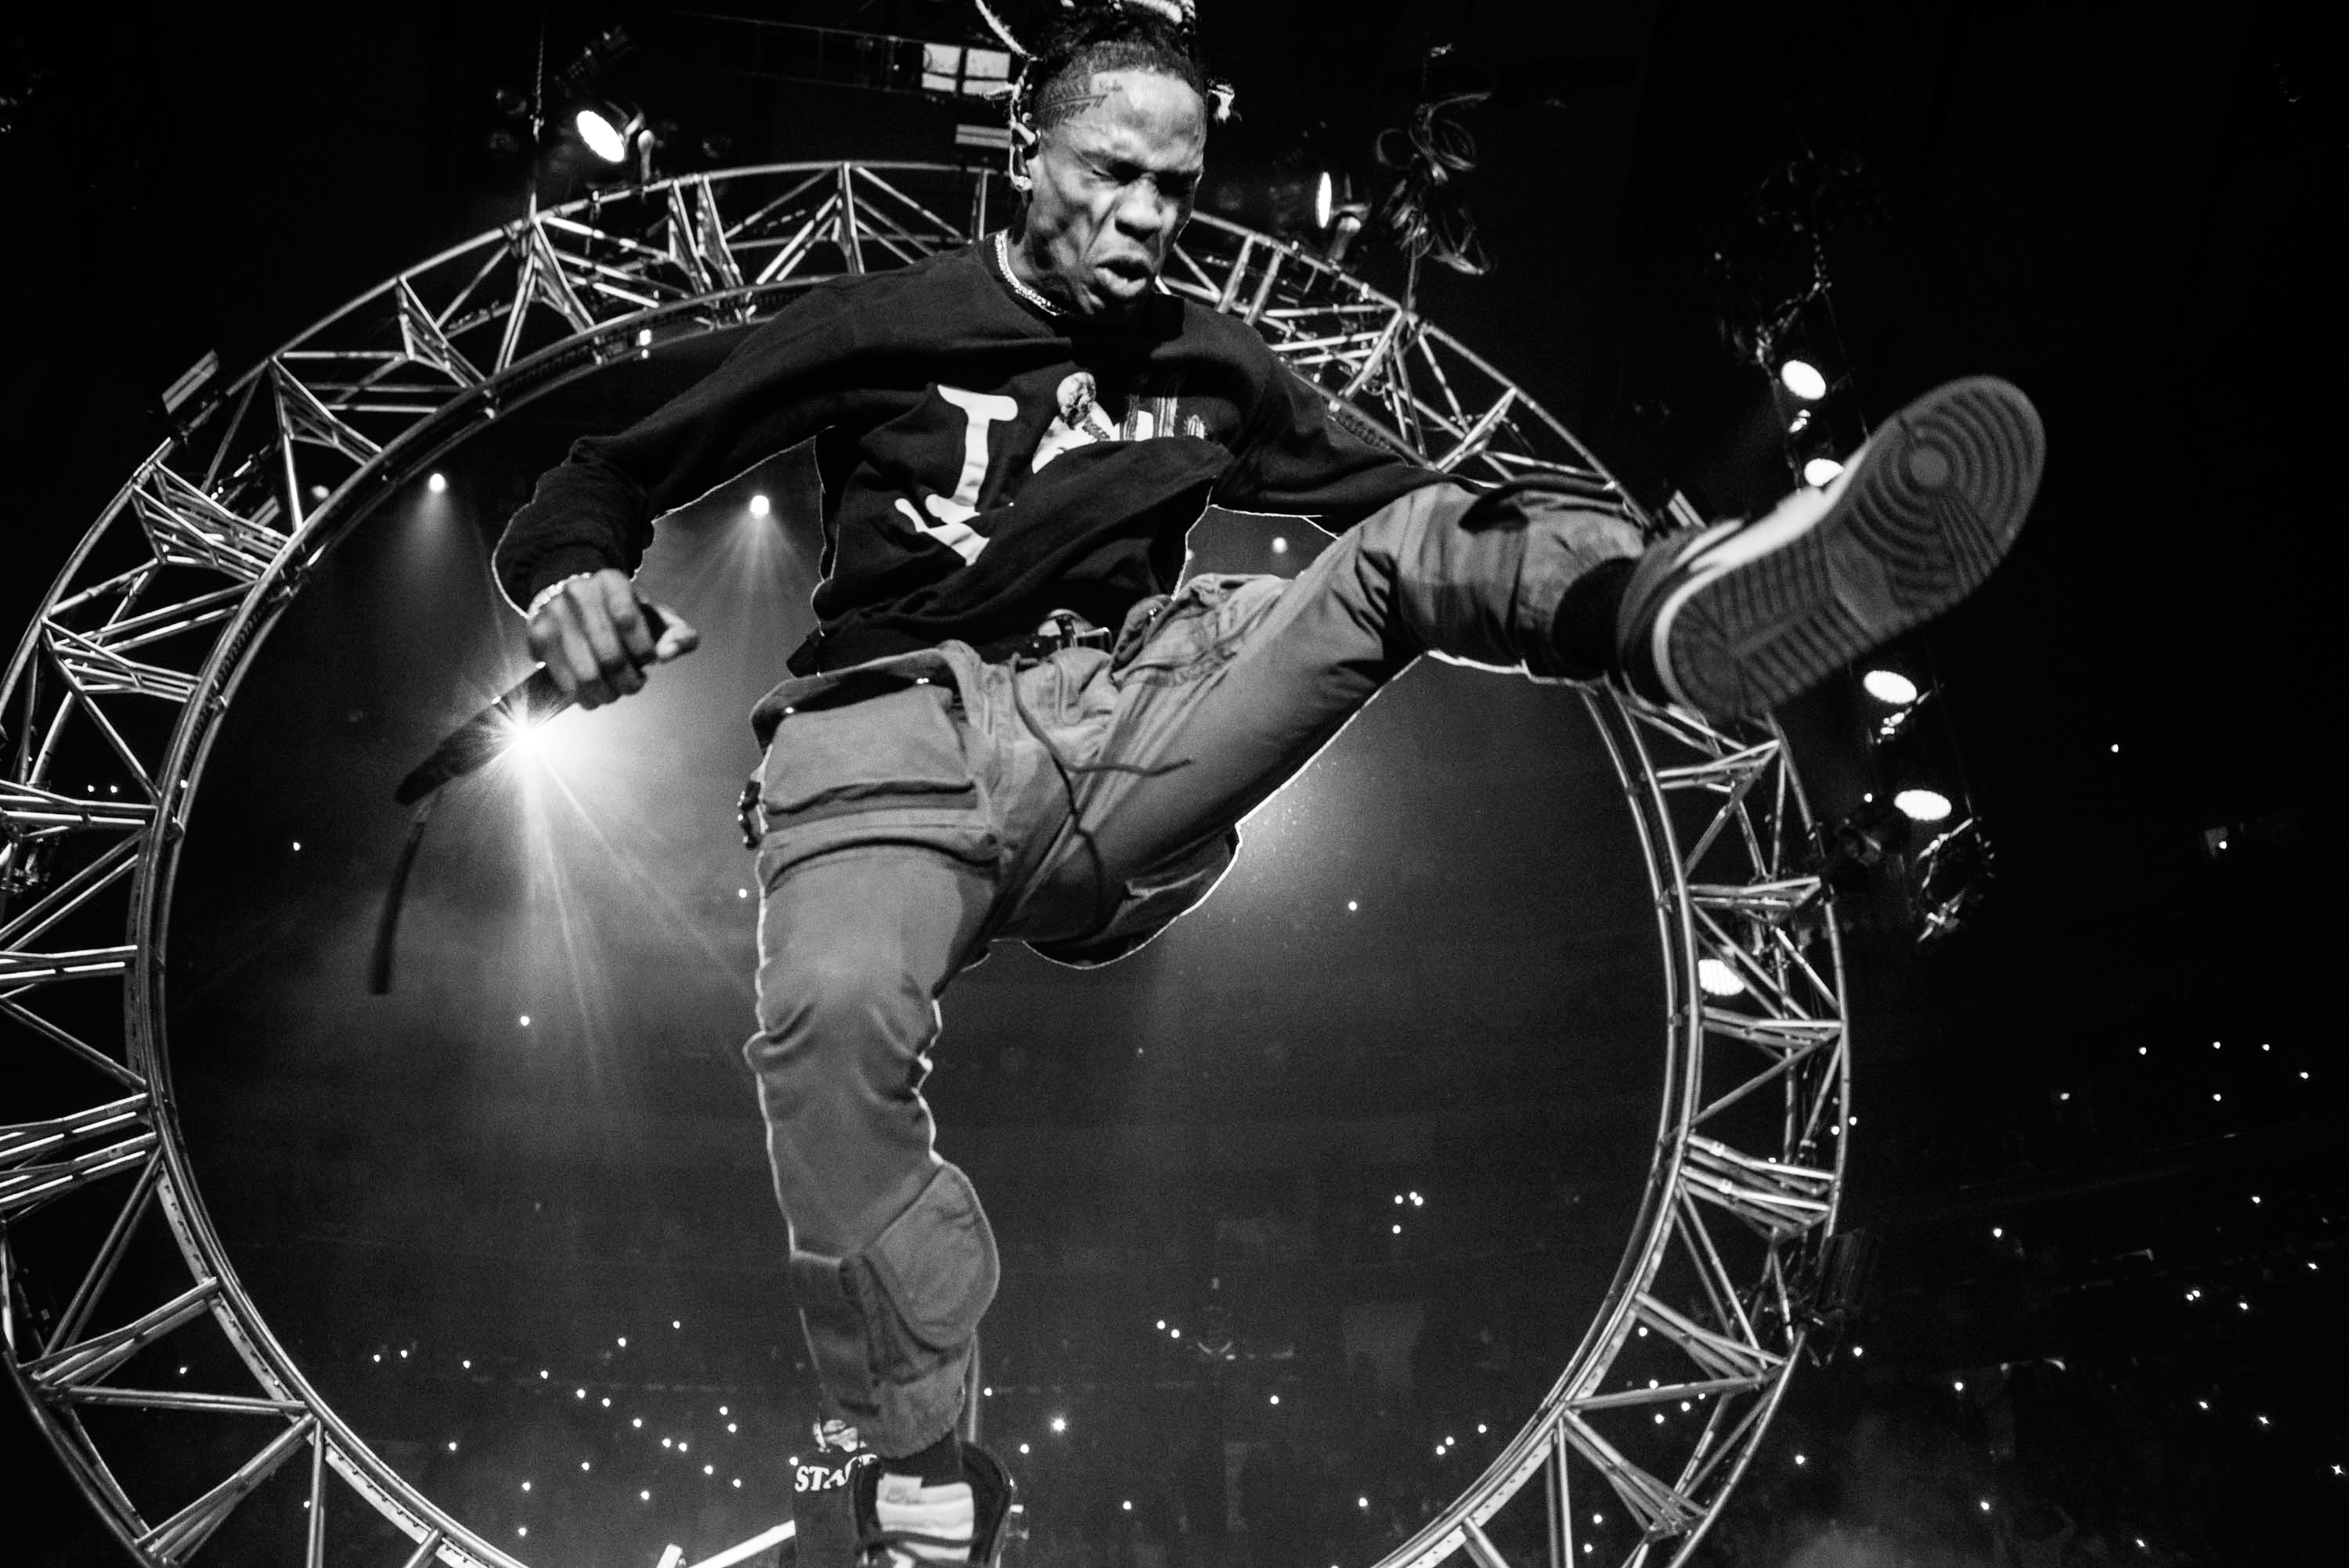 b8f6016008bf How Travis Scott Became Music's (Not Just Rap's) Best Performer ...